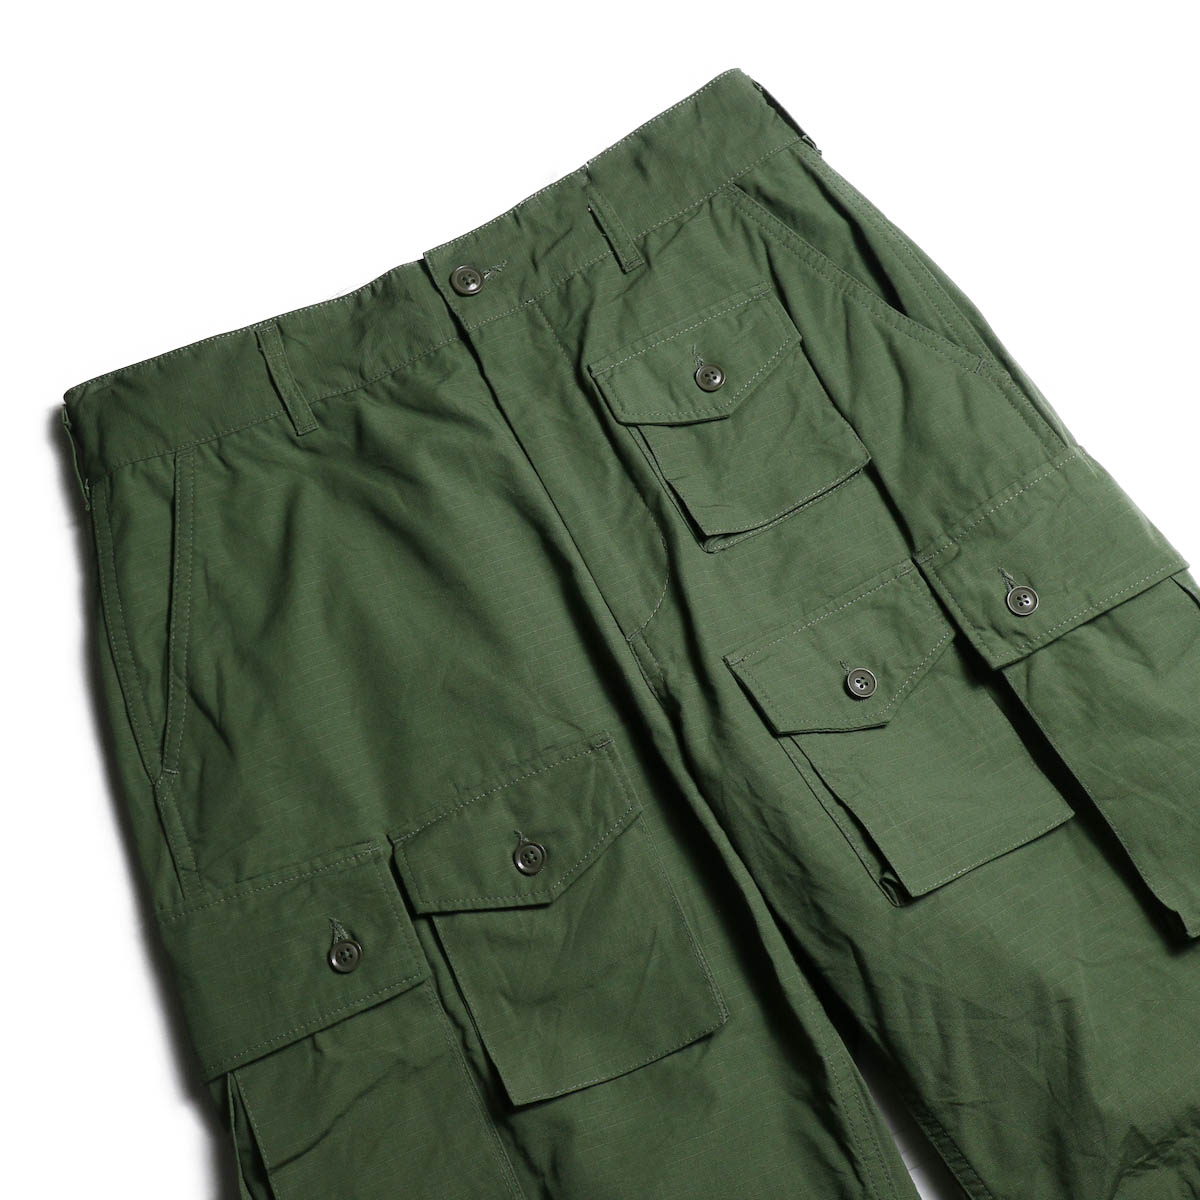 ENGINEERED GARMENTS /  FA Pant -Cotton Ripstop (Olive) ウエスト